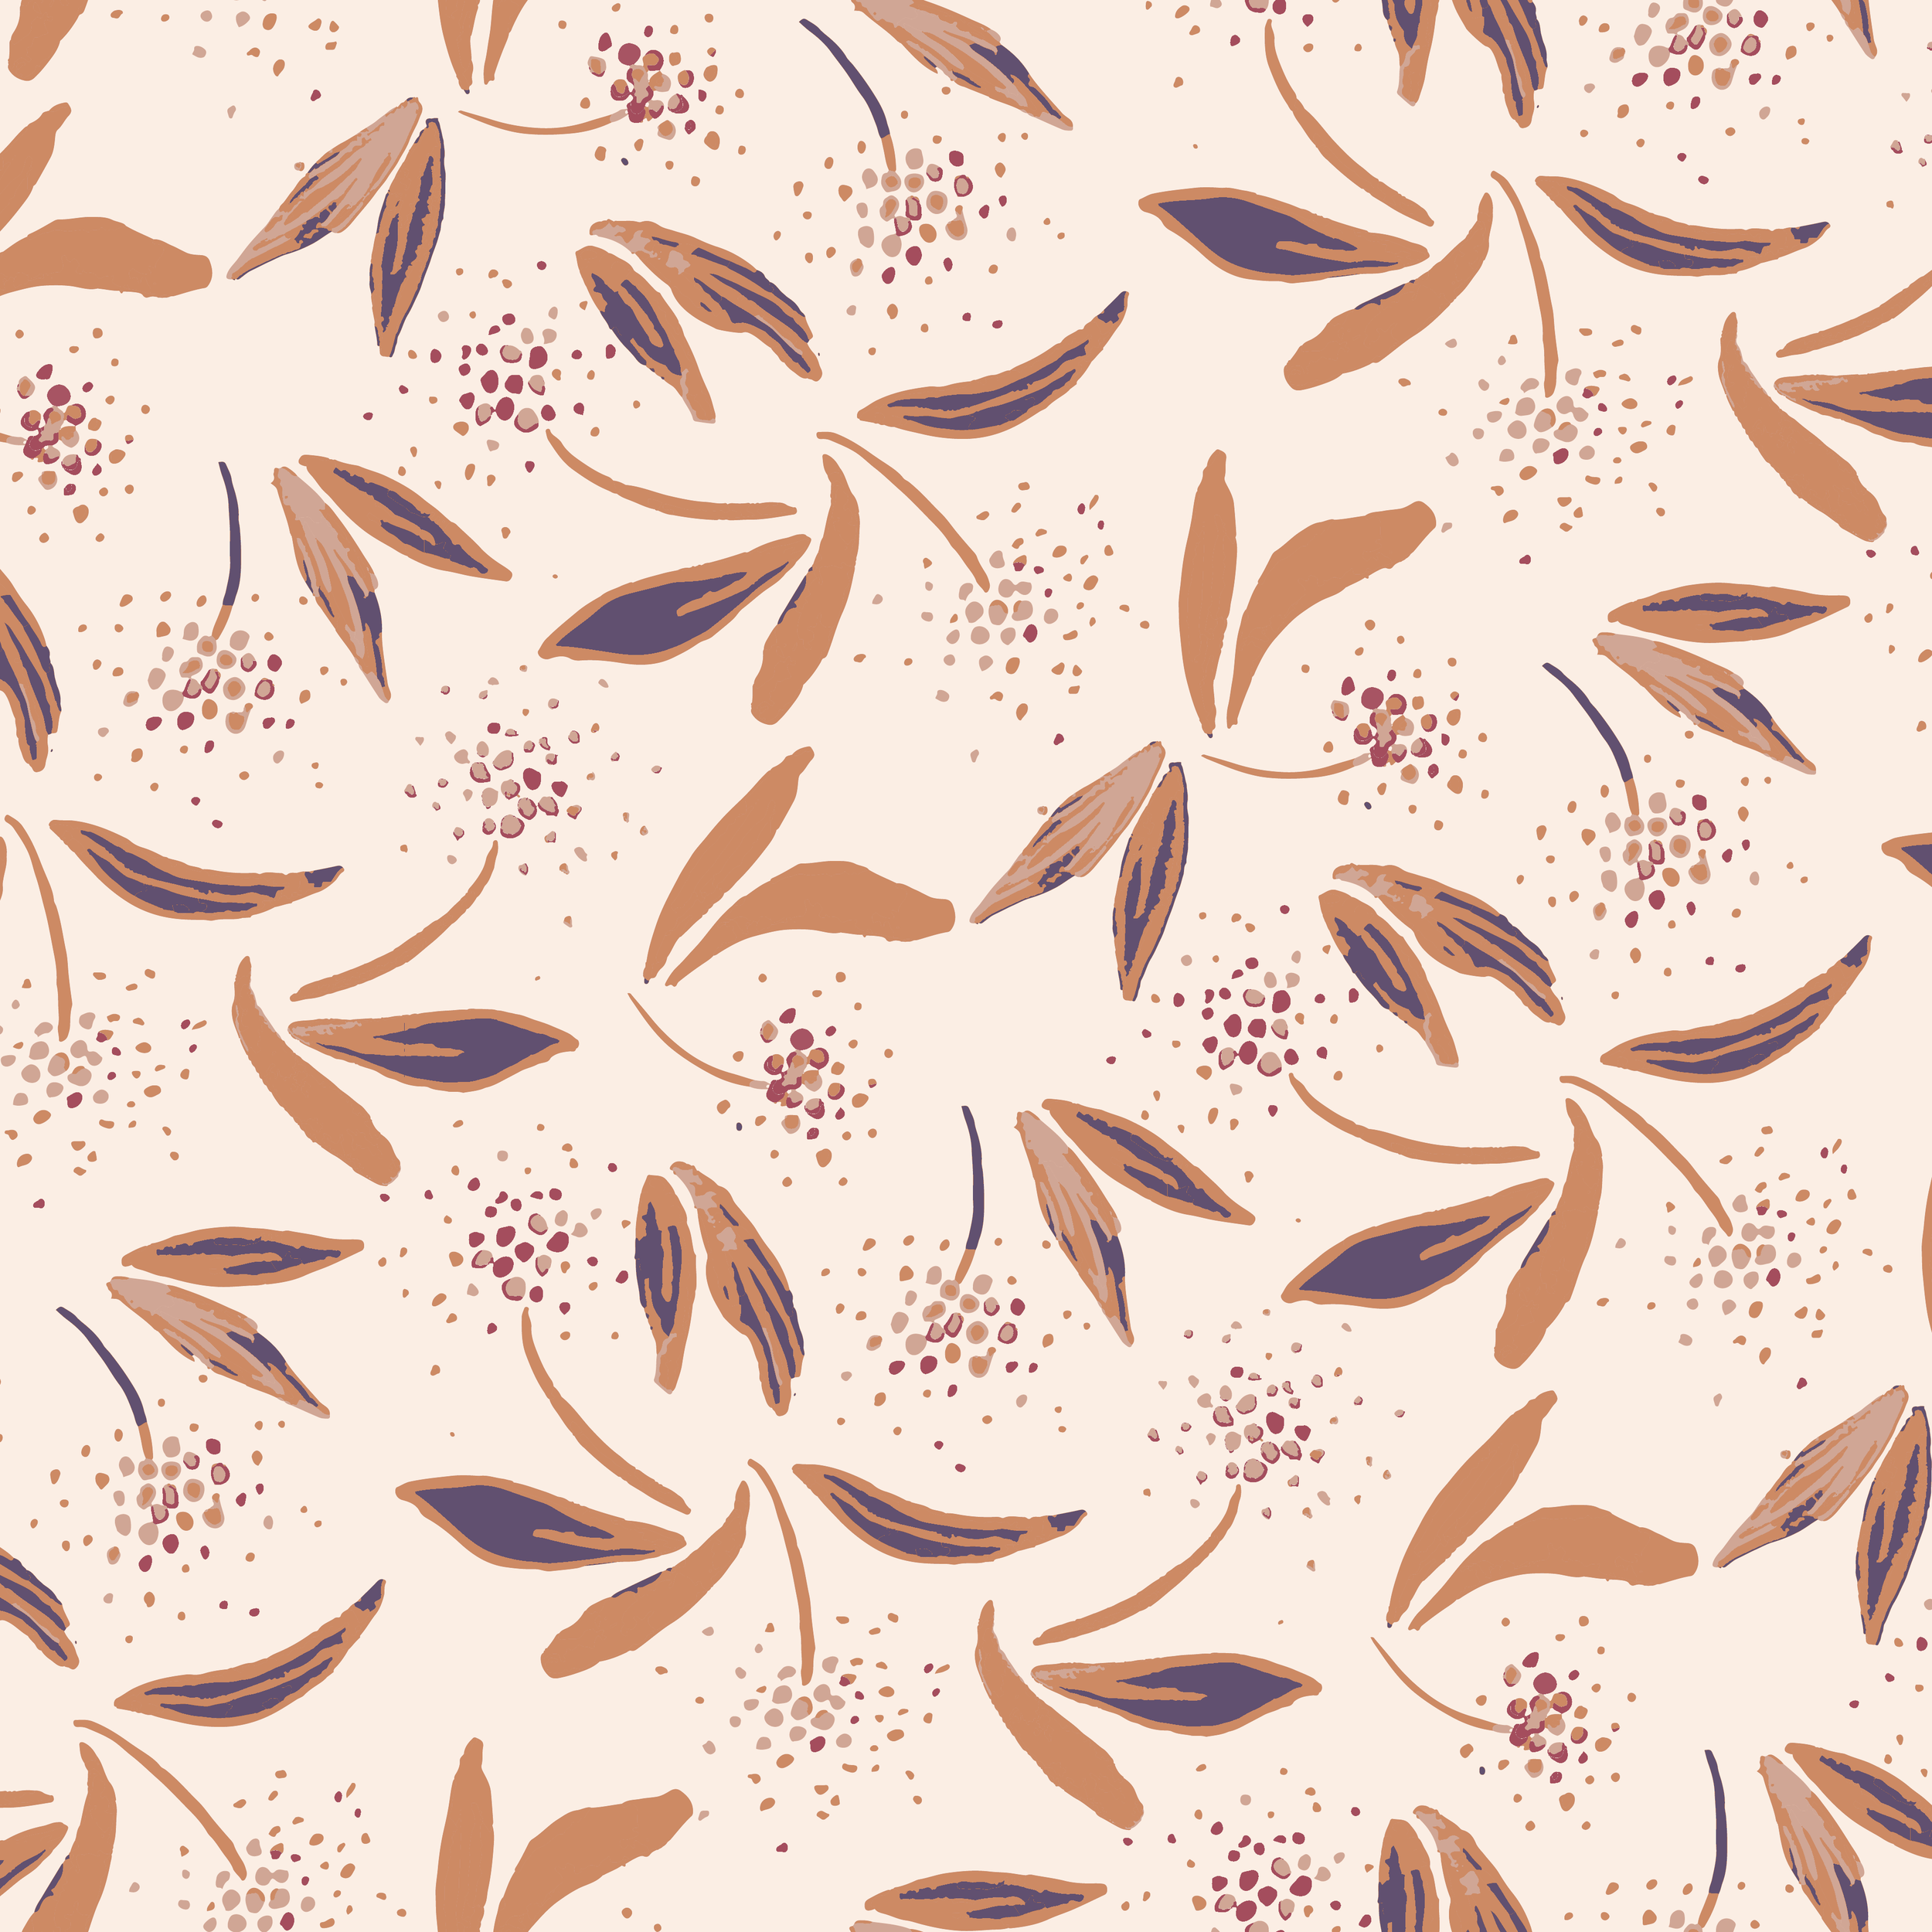 redleaves-repeat9.png